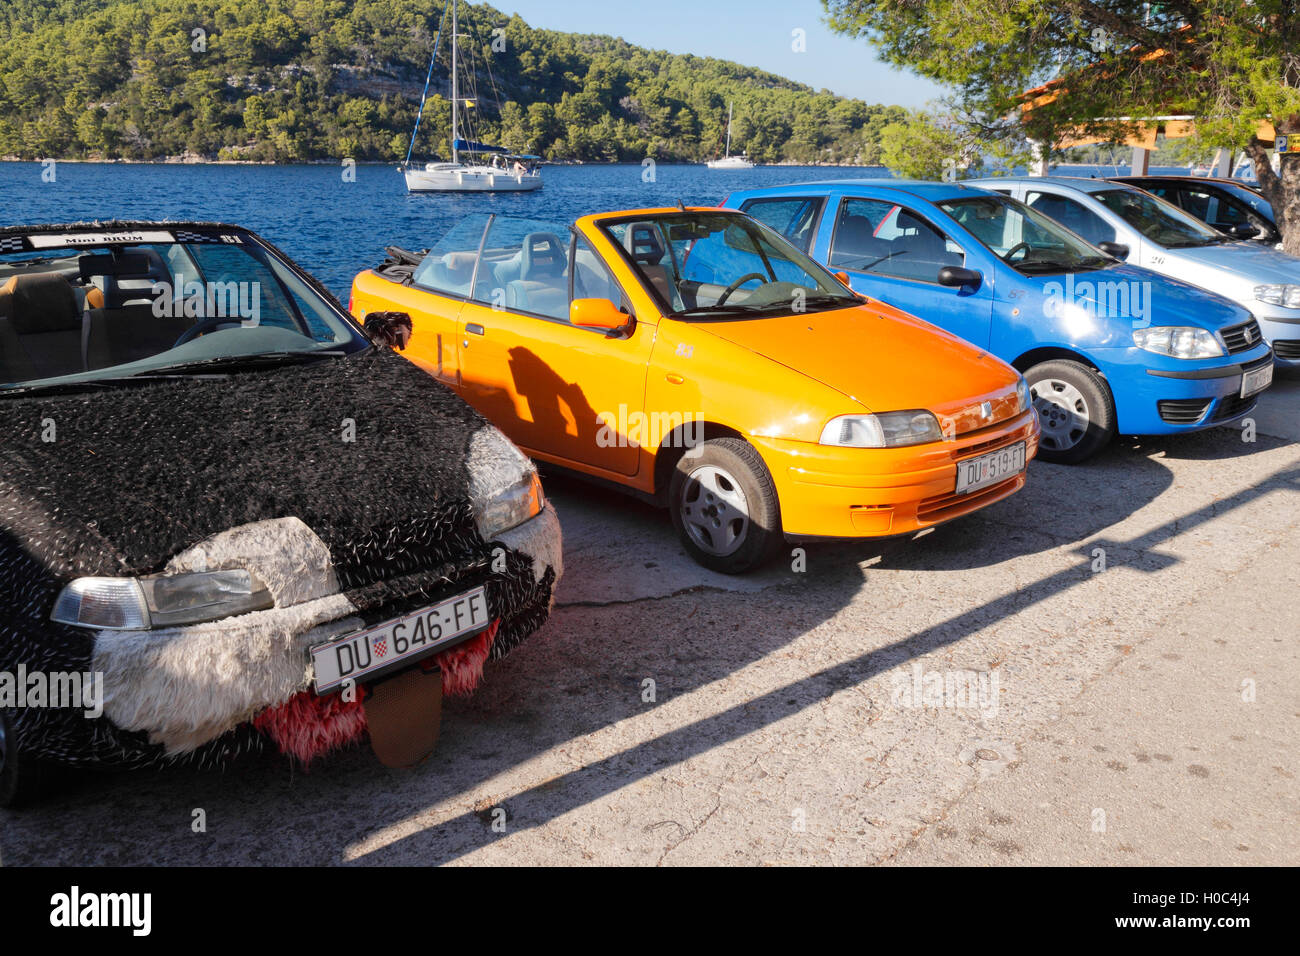 Get cheap rental car deals in Palma De Mallorca, for your next business trip from Sixt Rent a Car. No recent car deals were found. Please use the